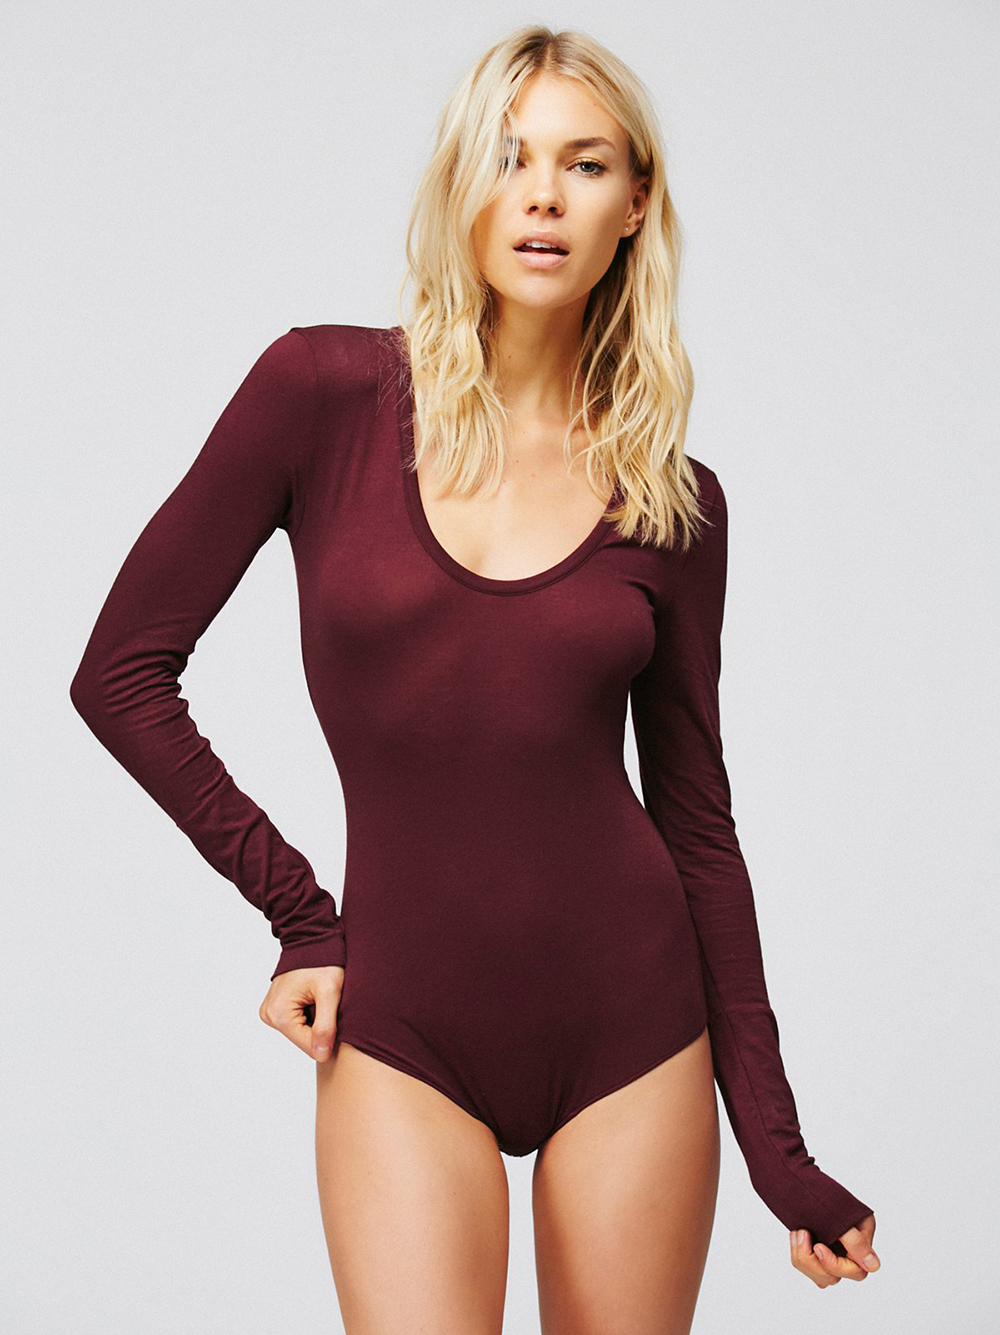 Free People Easy Peasy Tee Bodysuit - The Best Bodysuits